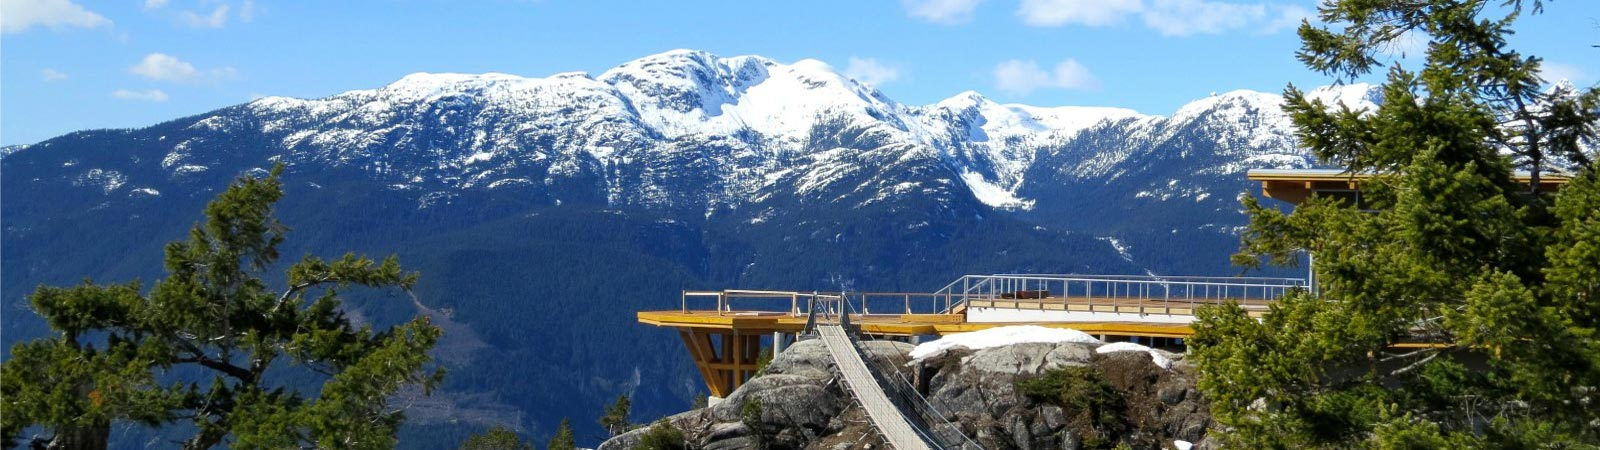 Sea-to-Sky Gondola Squamish